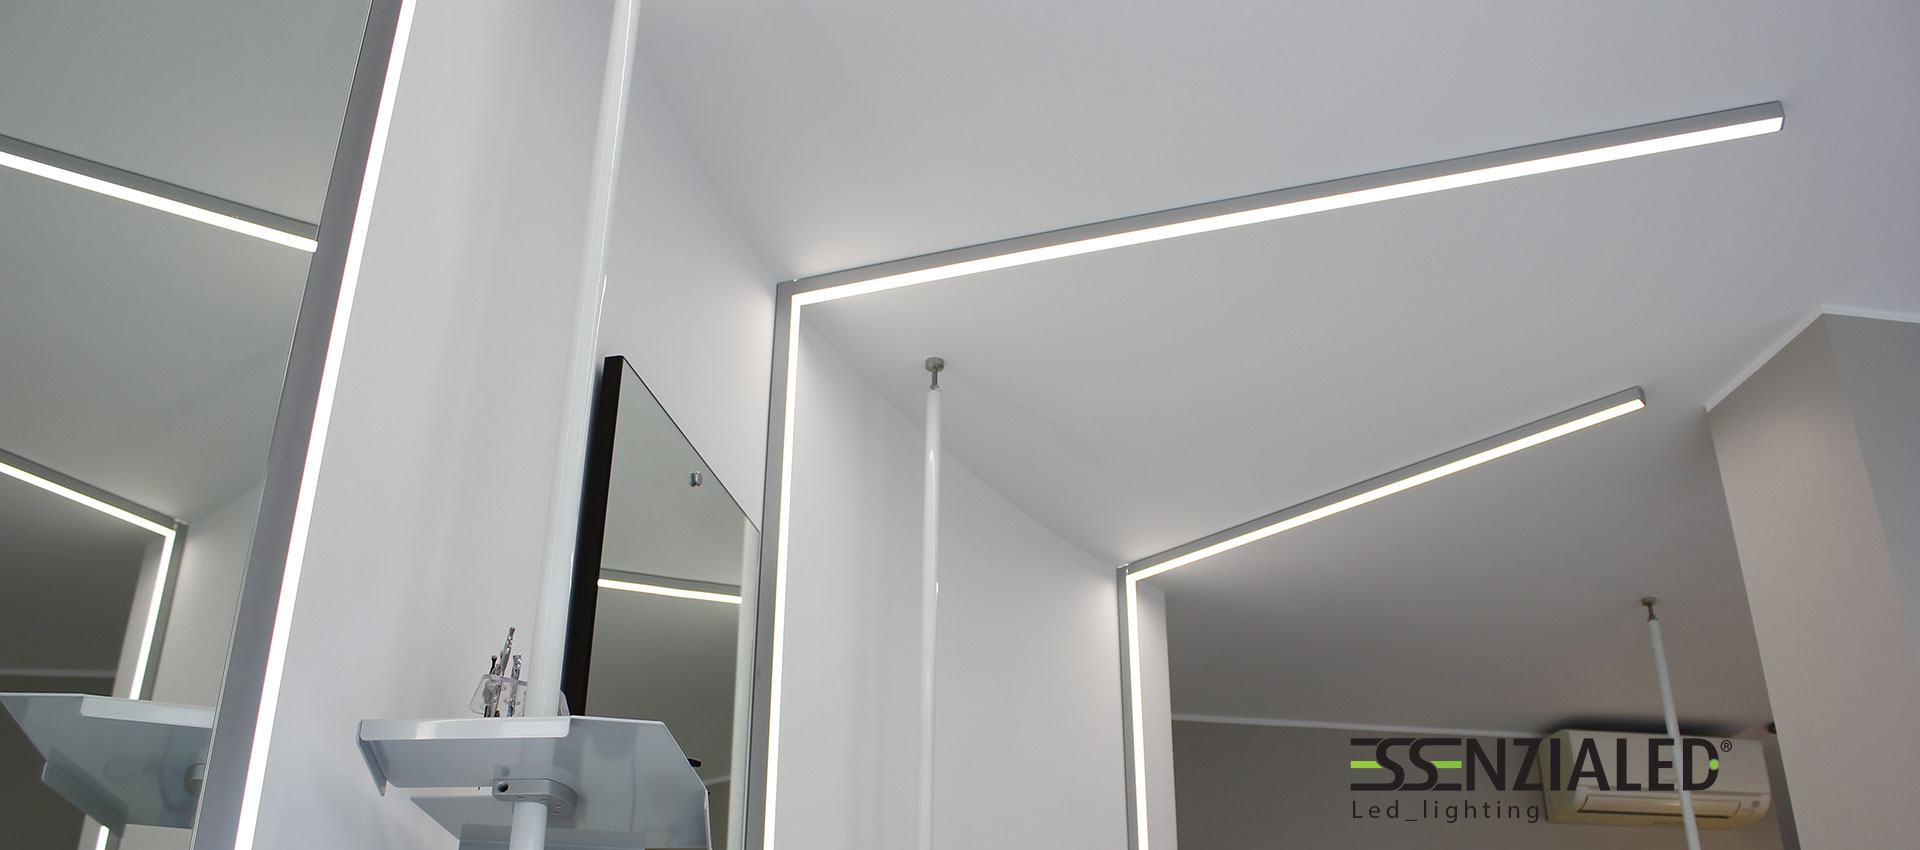 Luci a led per soffitto gi46 pineglen for Illuminazione a binario a led